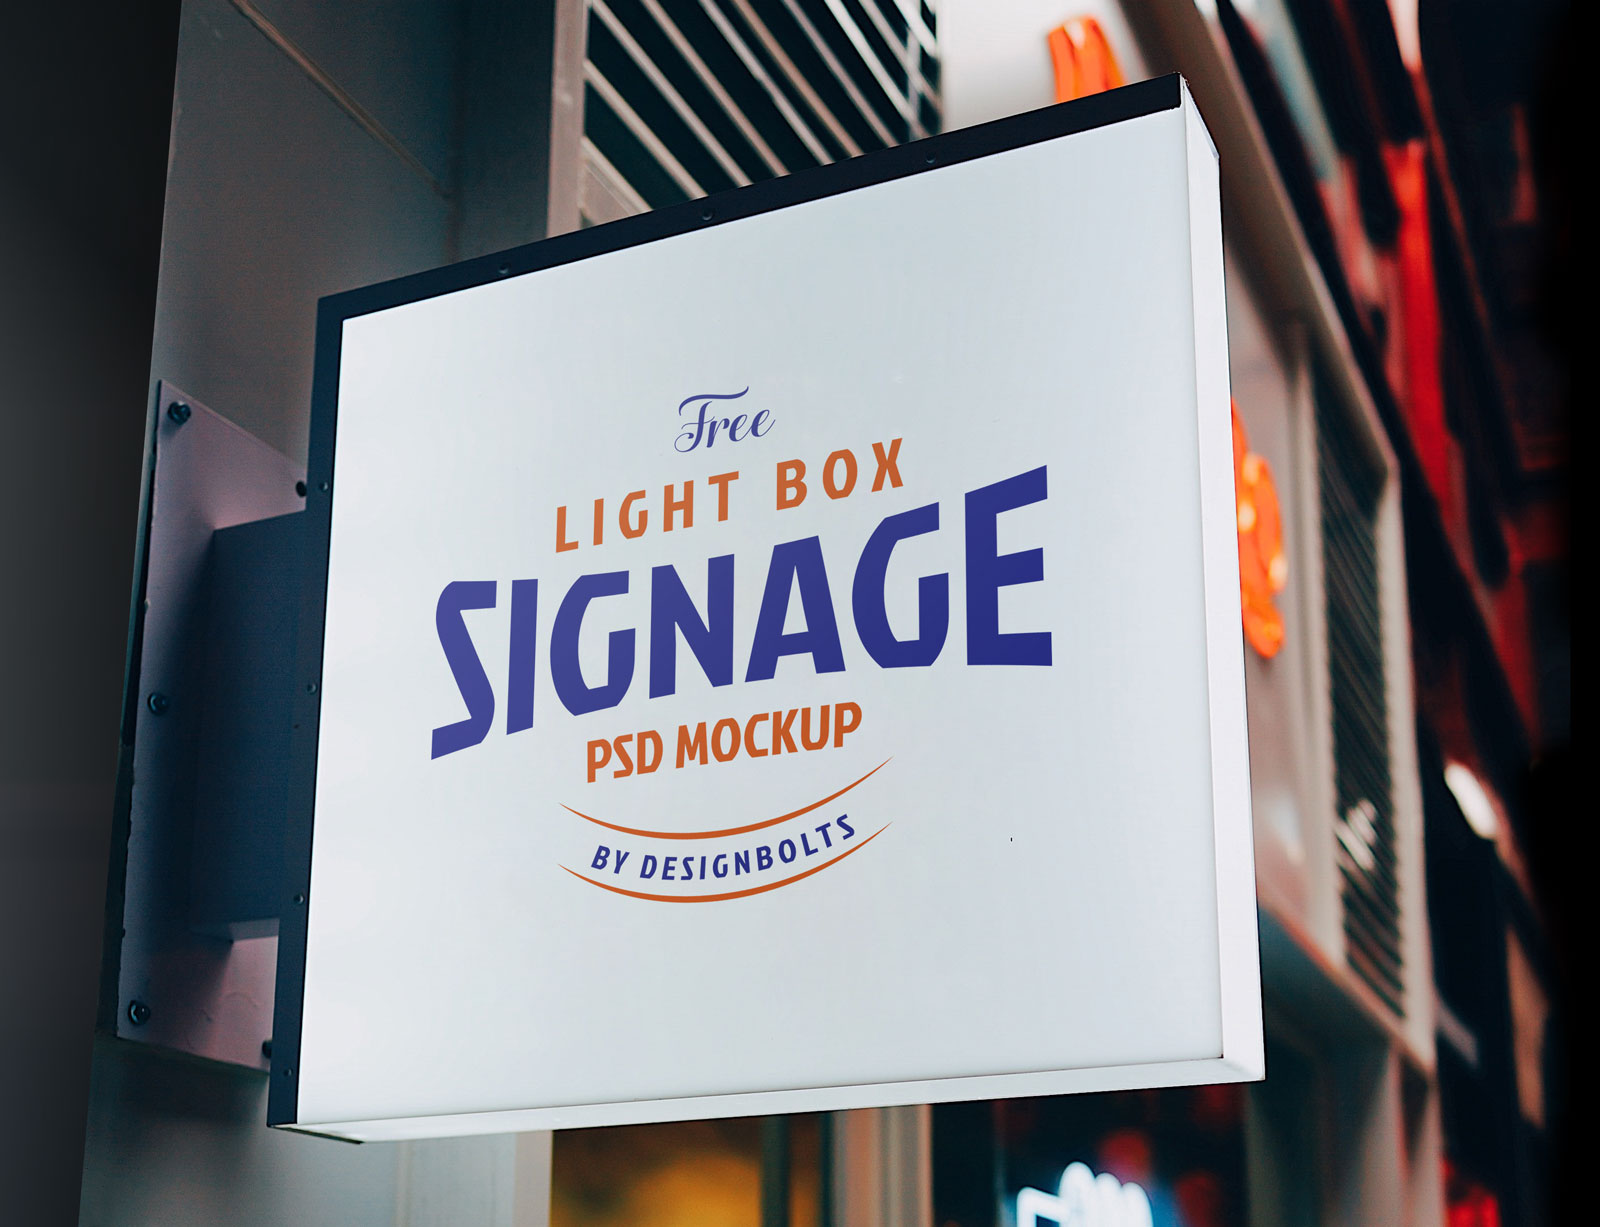 Free Light Box Signage Board Mockup